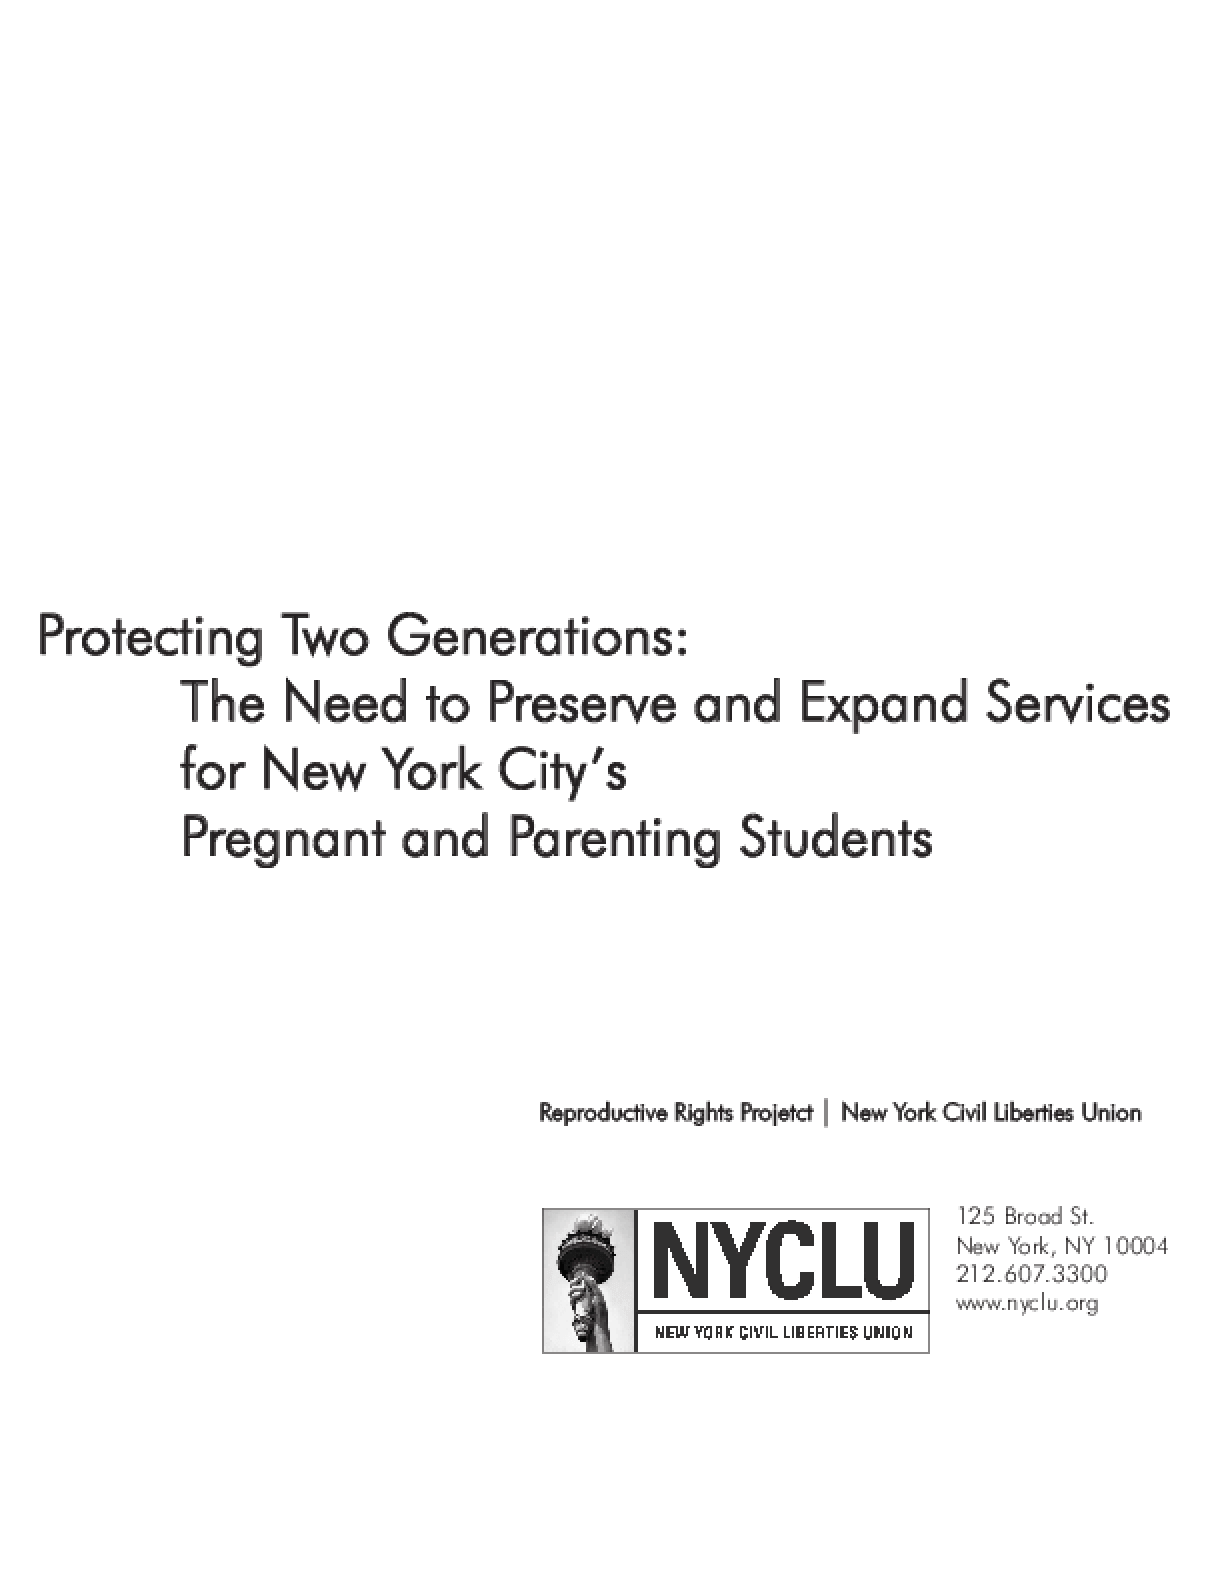 Protecting Two Generations: The Need to Preserve and Expand Services for New York City's Pregnant and Parenting Students